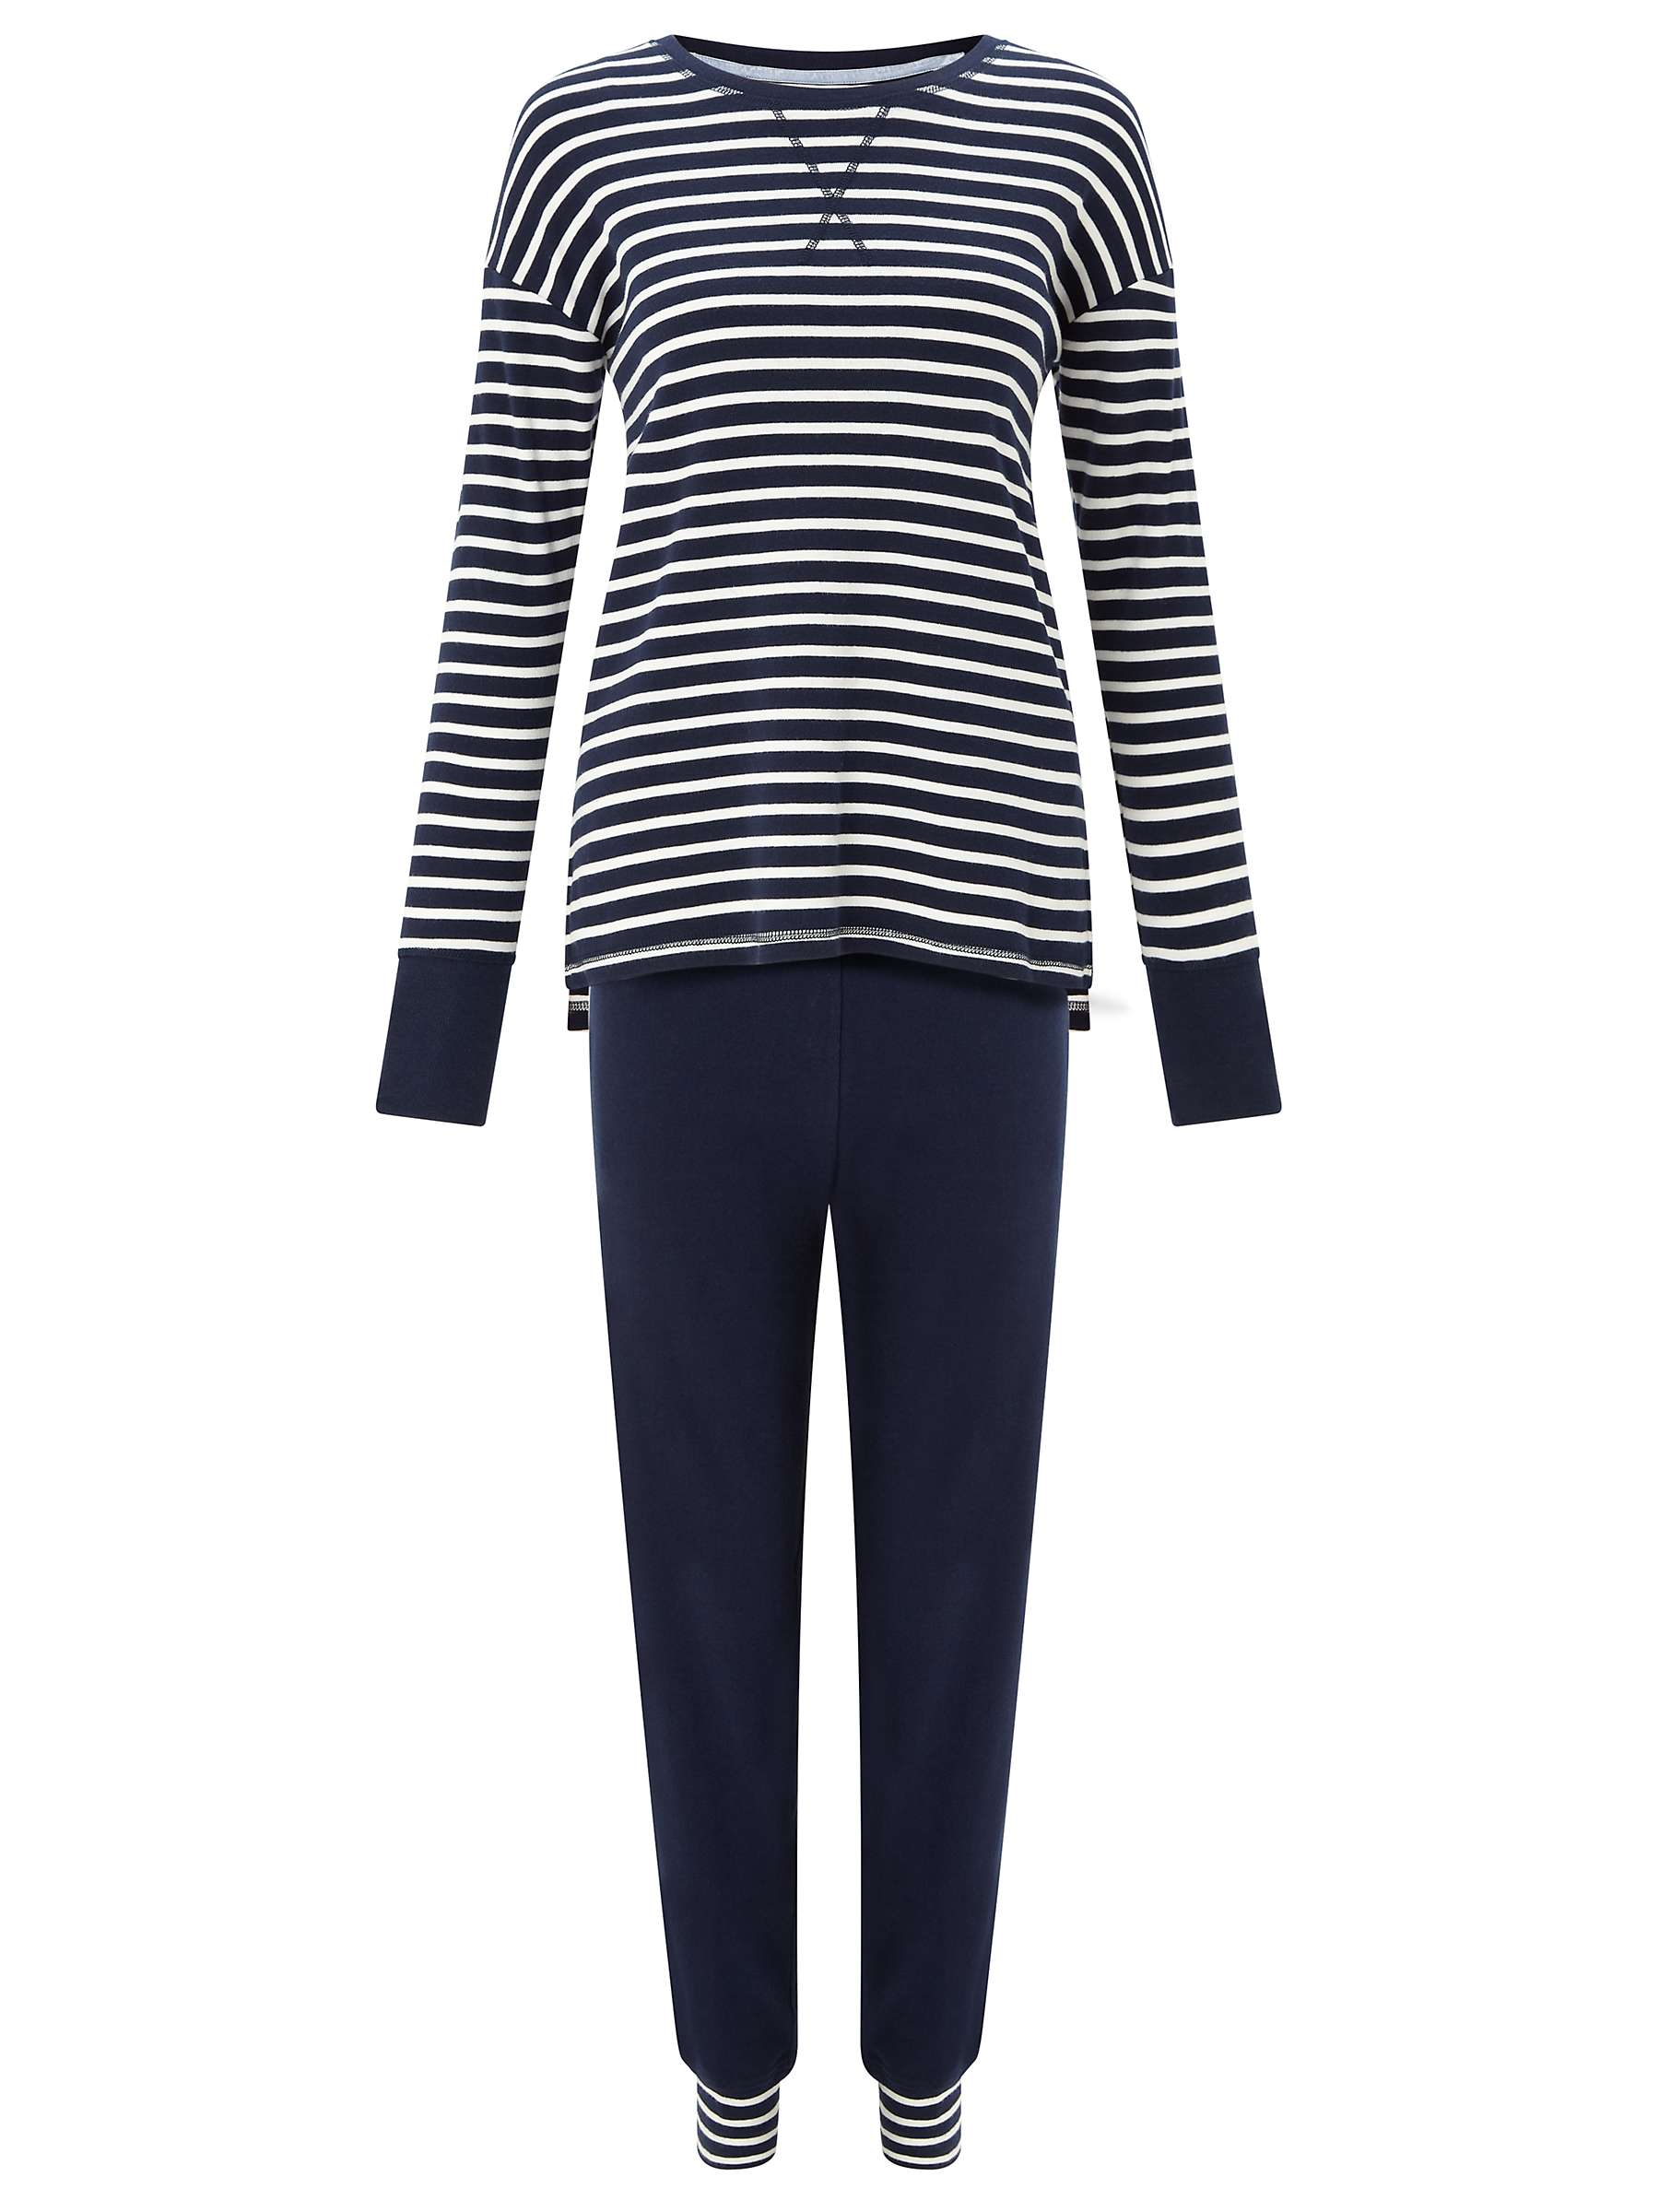 John lewis women's loungewear set, made up of a blue and white breton top and navy trousers.